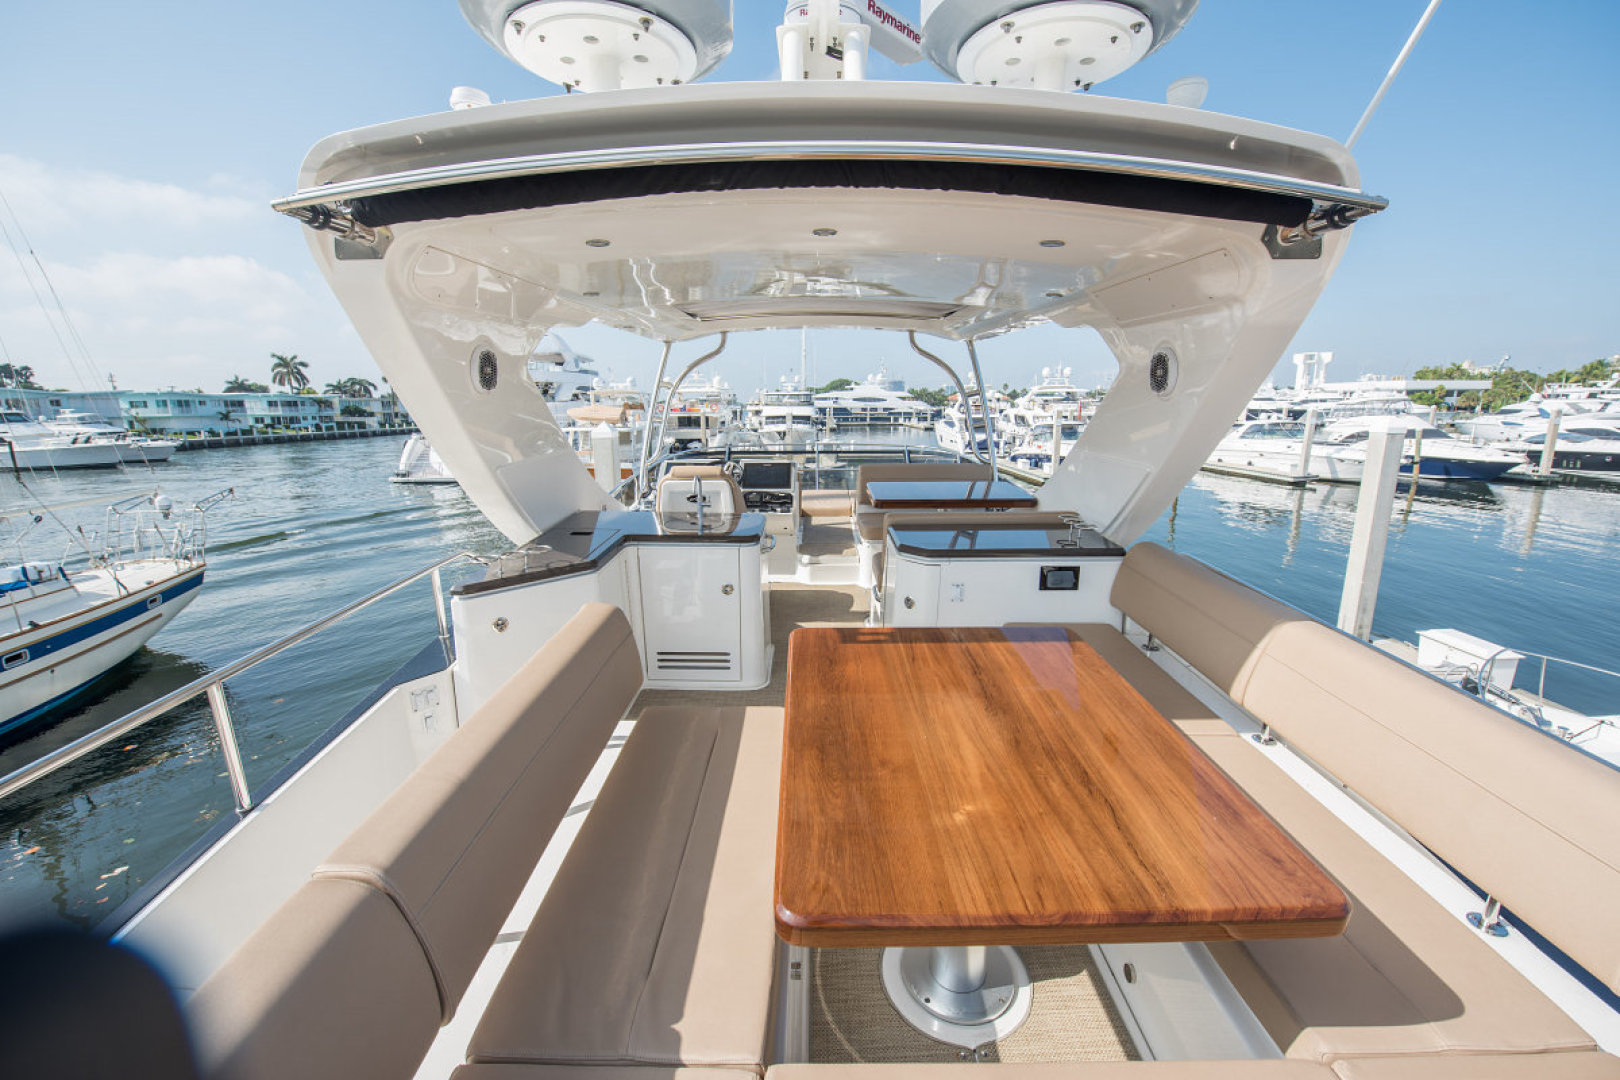 Sea Ray-L590 Fly 2016-2016 Sea Ray L590 Fly Ft. Lauderdale-Florida-United States-1284605 | Thumbnail